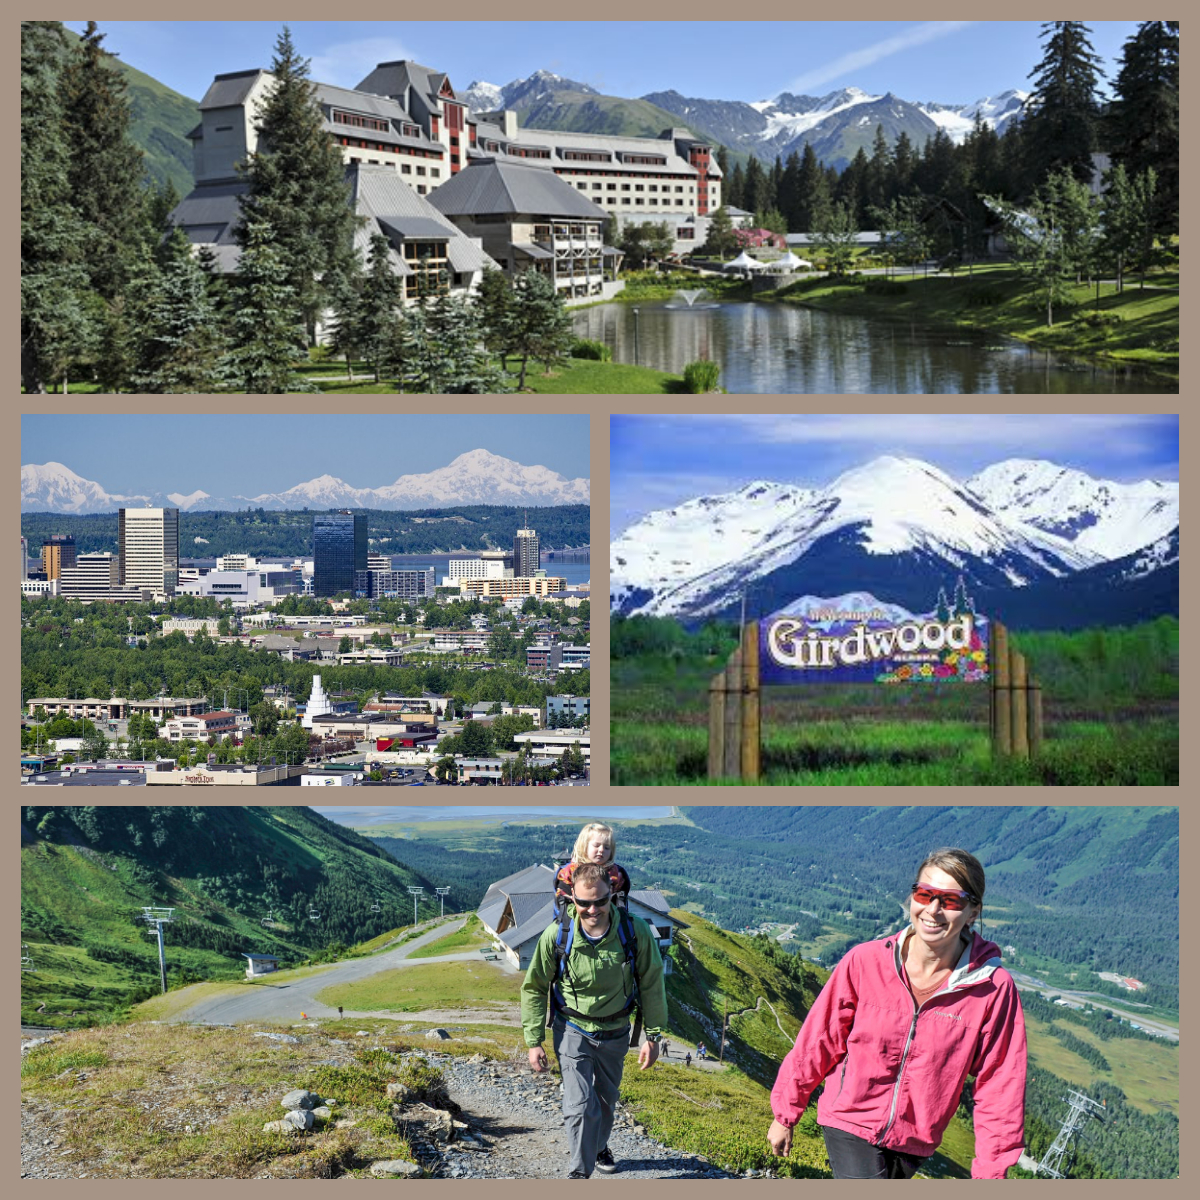 girdwood dating The girdwood forest fair is a family fair that has become an annual event in the resort town of girdwood, alaska located 36 miles south of anchorage the.